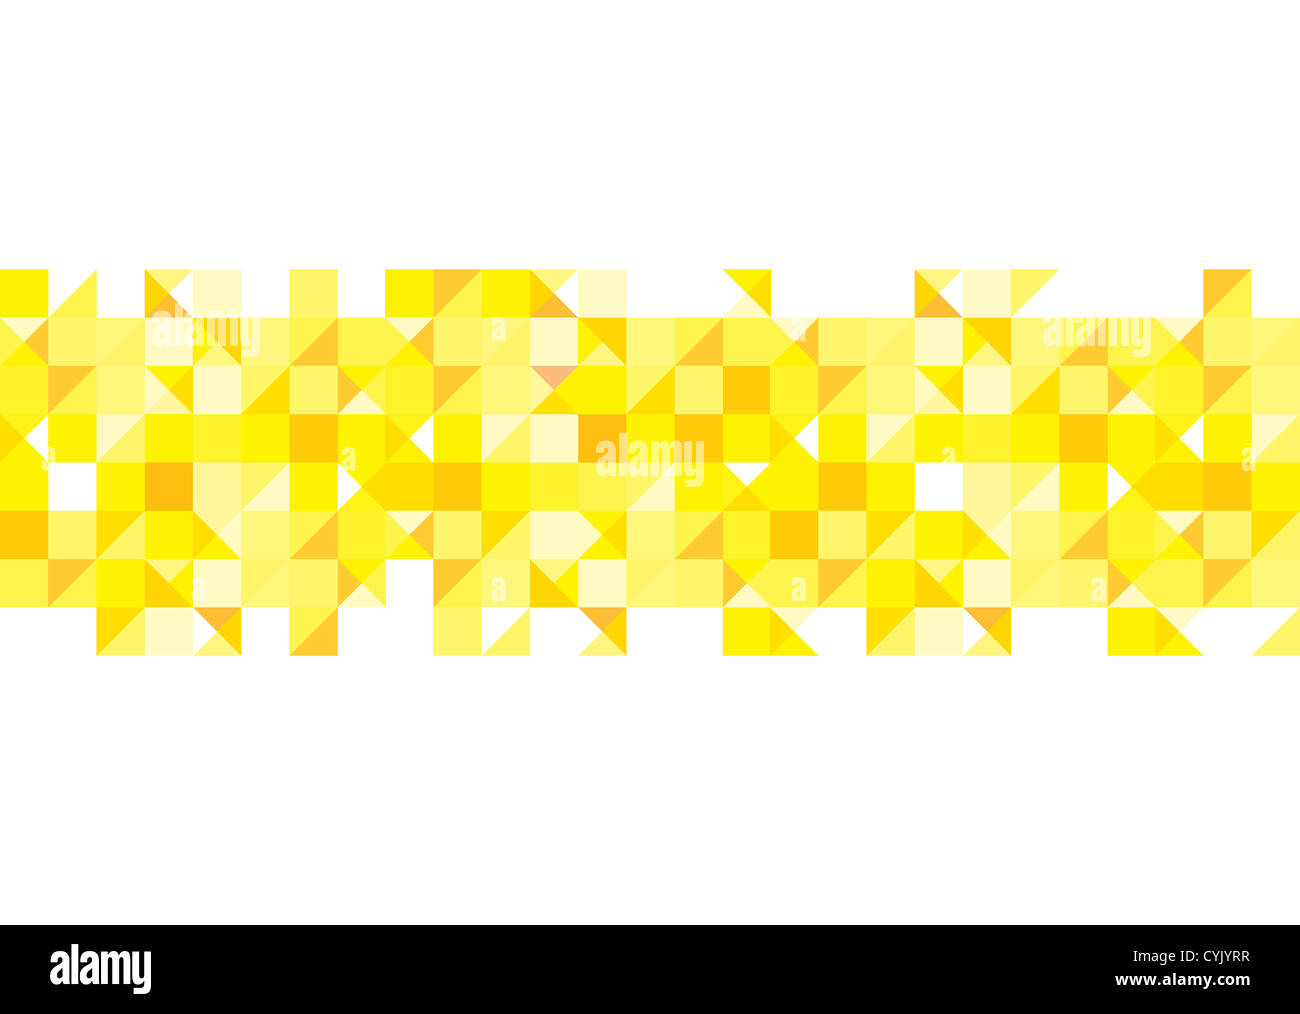 Yellow Shades abstract yellow square with shades of gold for presentation stock